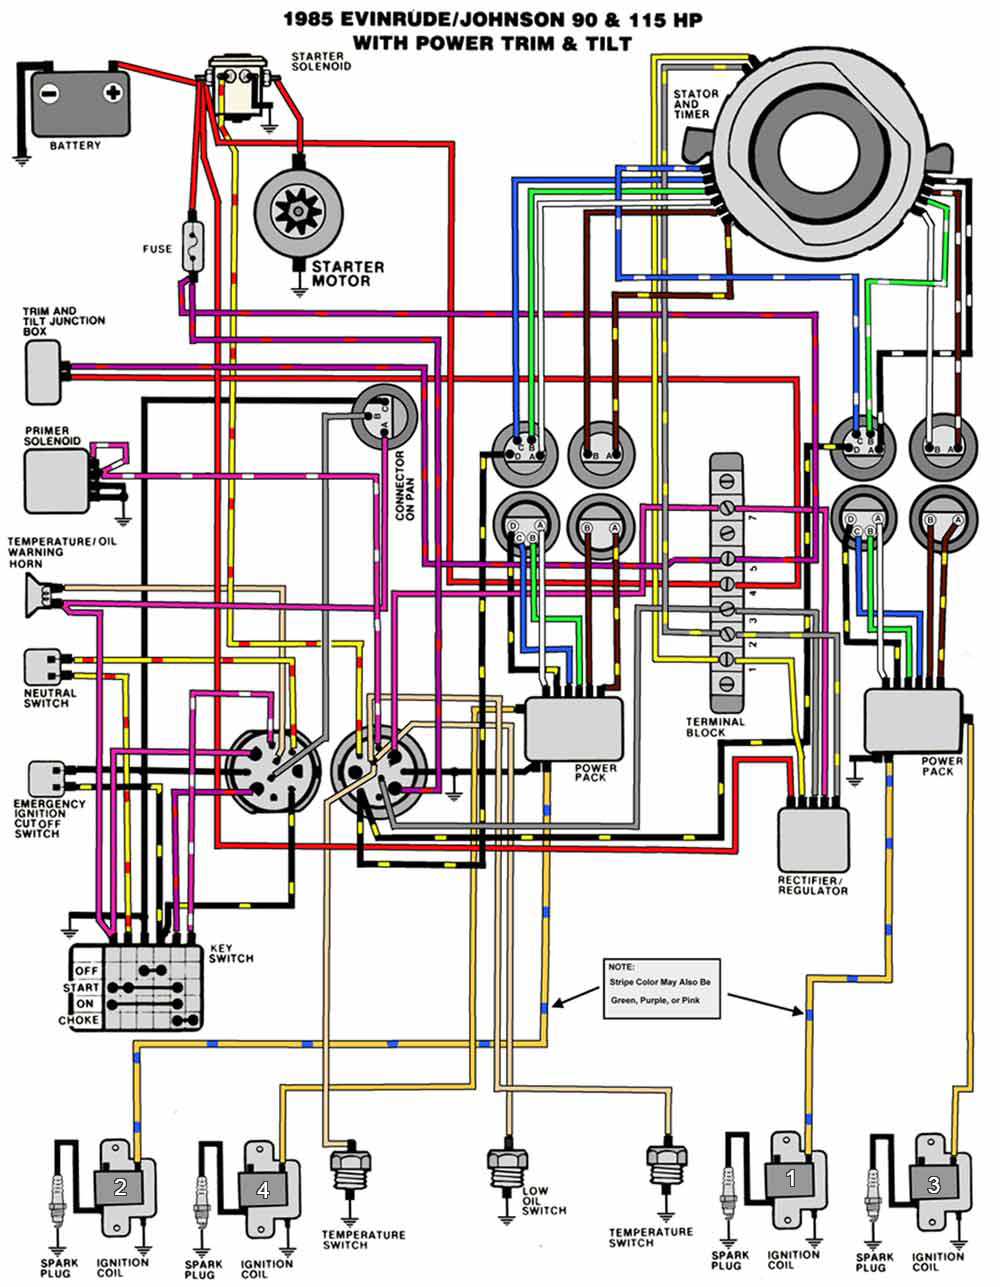 Na50 Wiring Diagram Library Tlr200 For A 1971 Mercury 115 Just Data Rh Ag Skiphire Co Uk